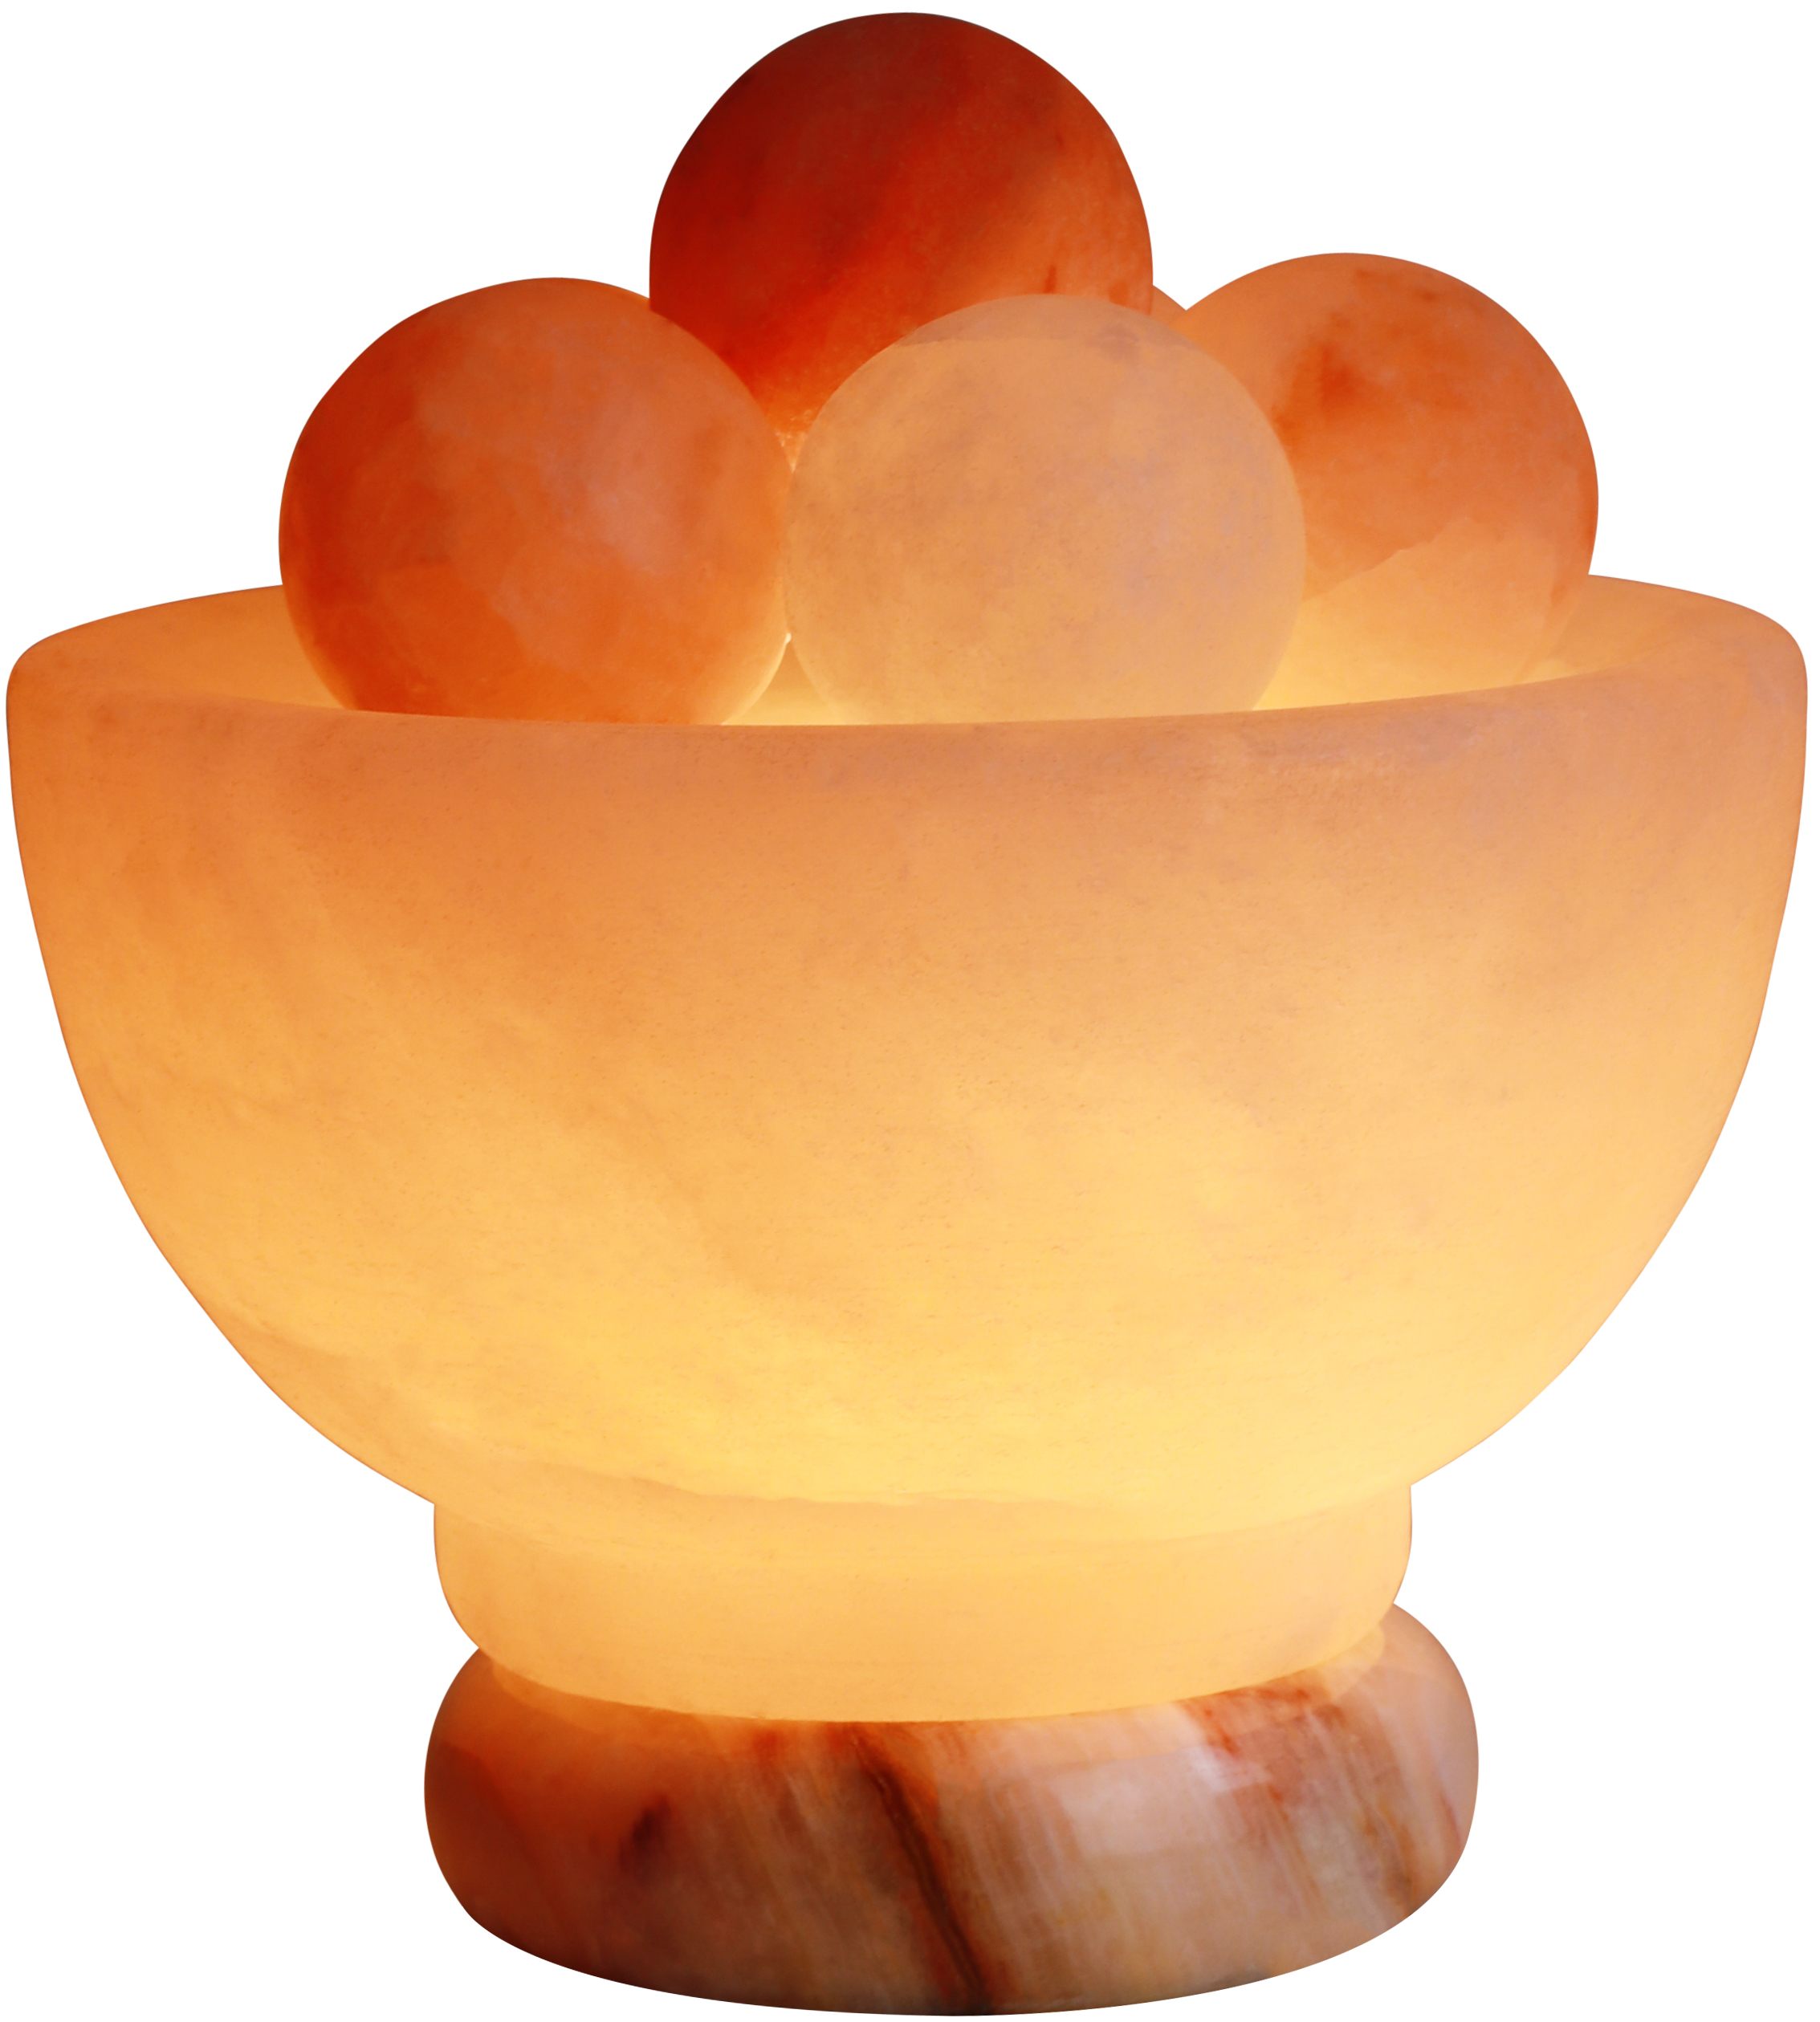 Massagers Spa Collection Himalayan Rock Salt Crystal Balls Healing Lamp, 7 Inch Diameter - Soft Calm Therapeutic Light - Handcrafted Salt Crystal Bowl w/6 Healing Balls - Table Lamp, Dark Orange Hue